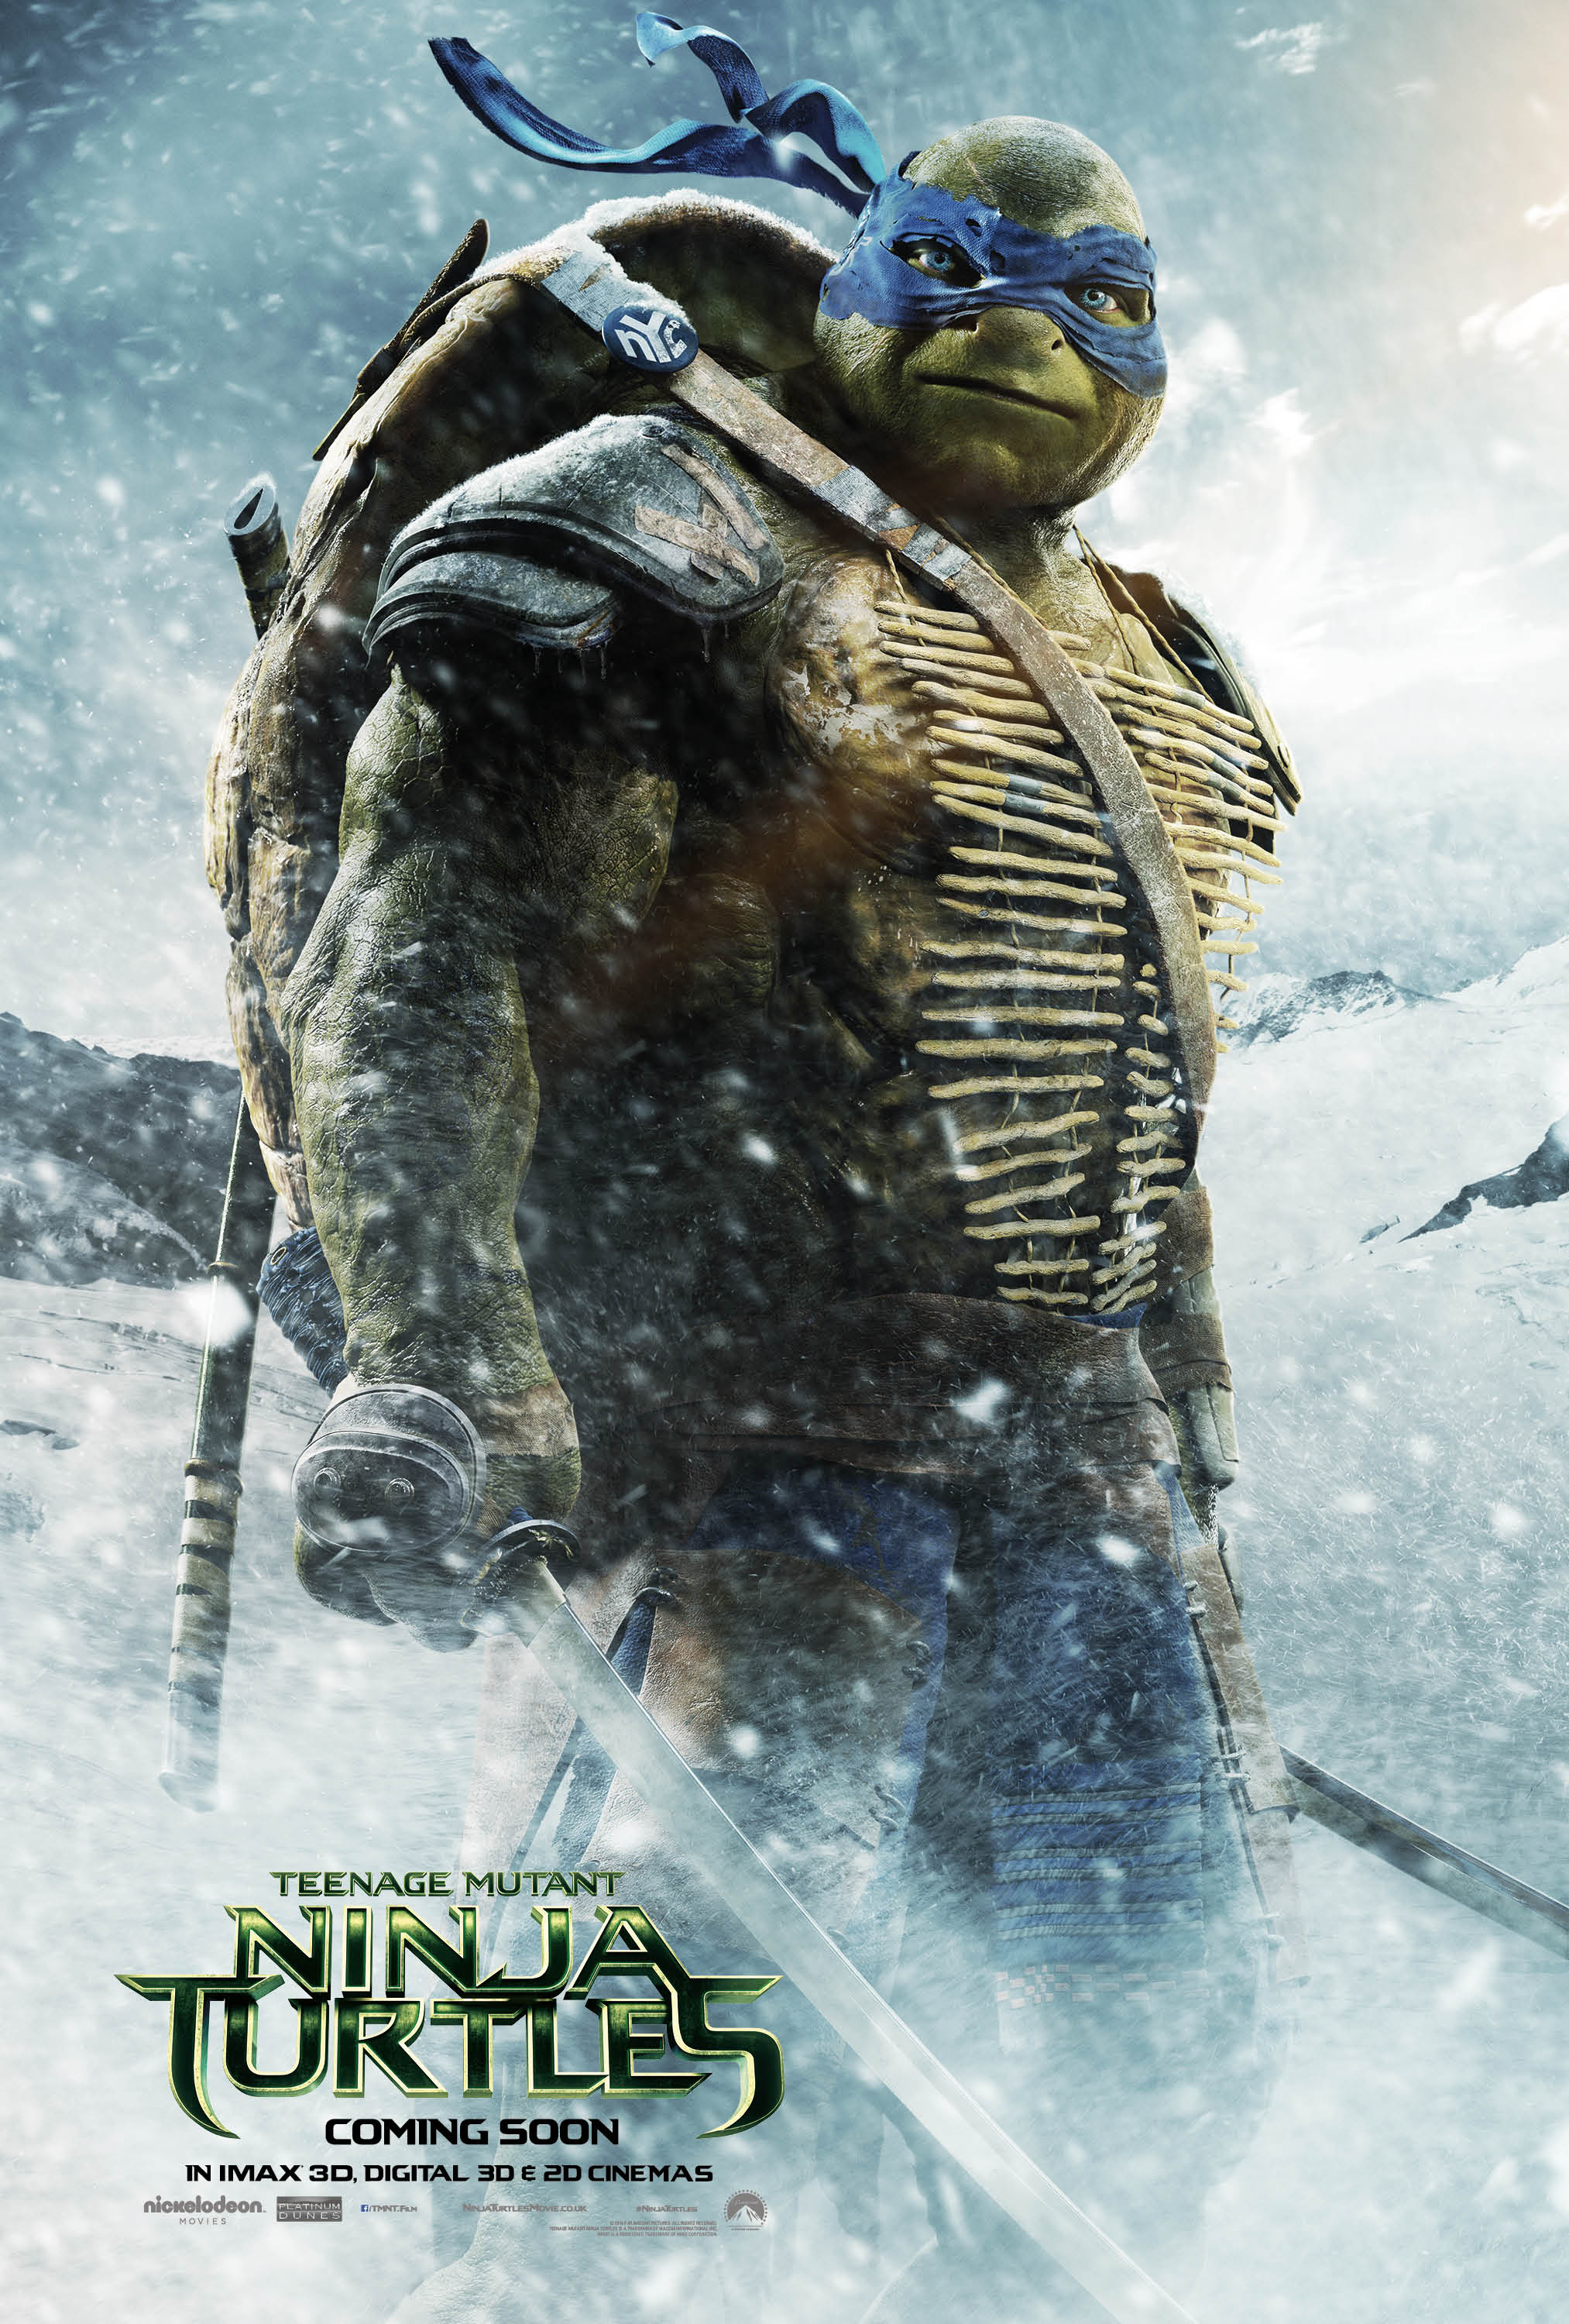 Teenage Mutant Ninja Turtles Character Poster - HeyUGuys